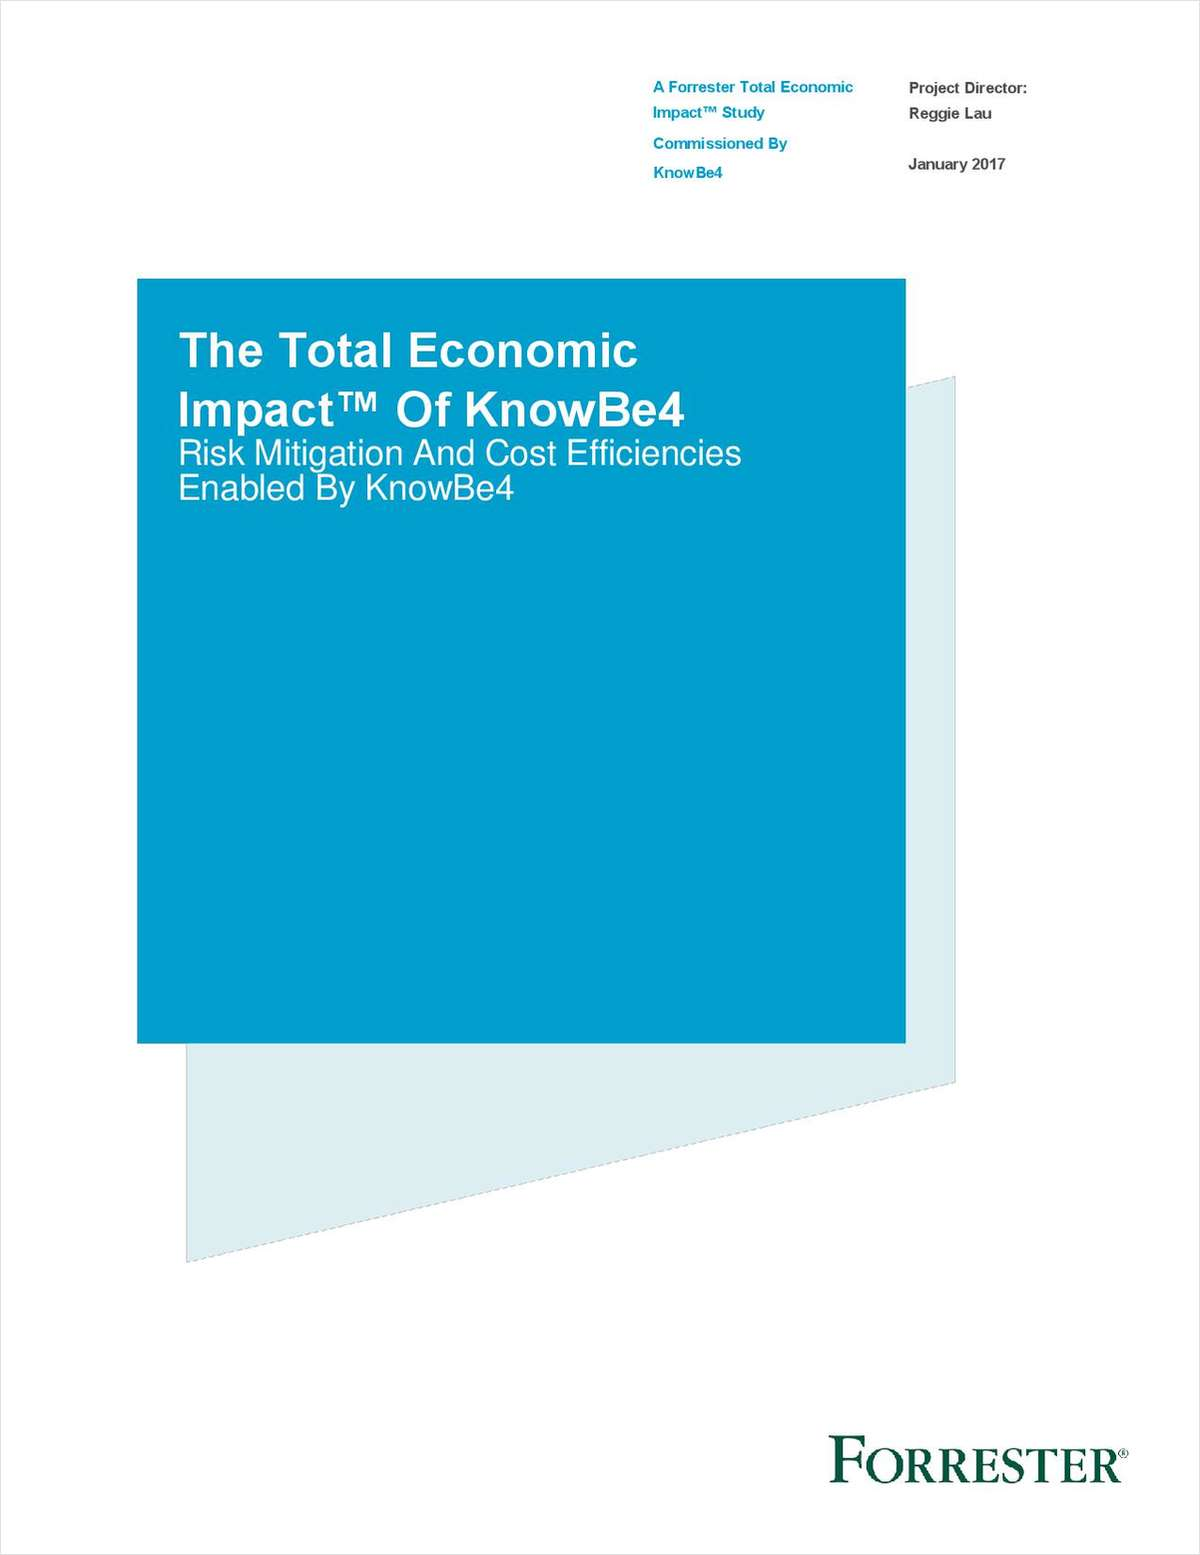 Forrester TEI™ Study: Value of KnowBe4 Goes Beyond ROI